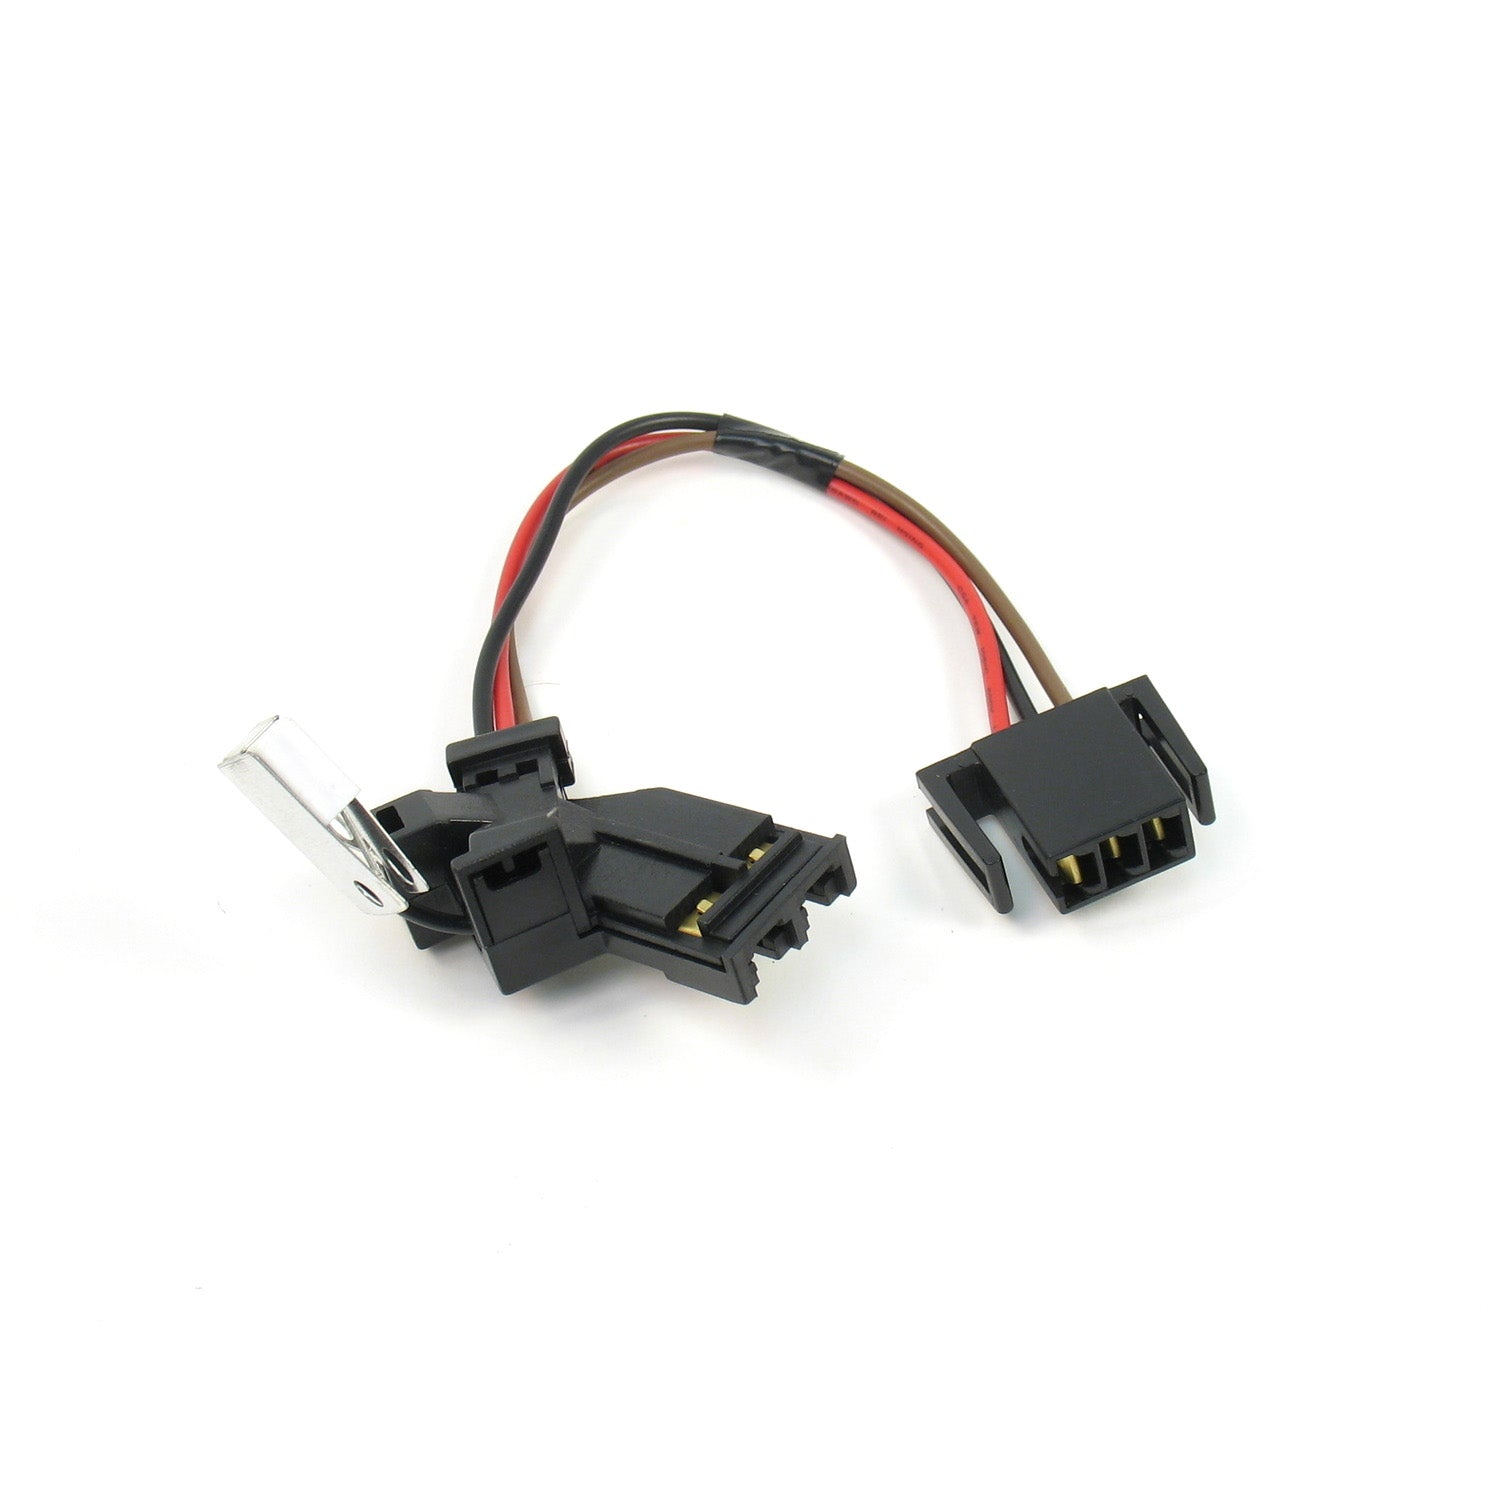 PerTronix D9007 Flame-Thrower HEI Distributor 4-Pin Wire Harness/Ca..